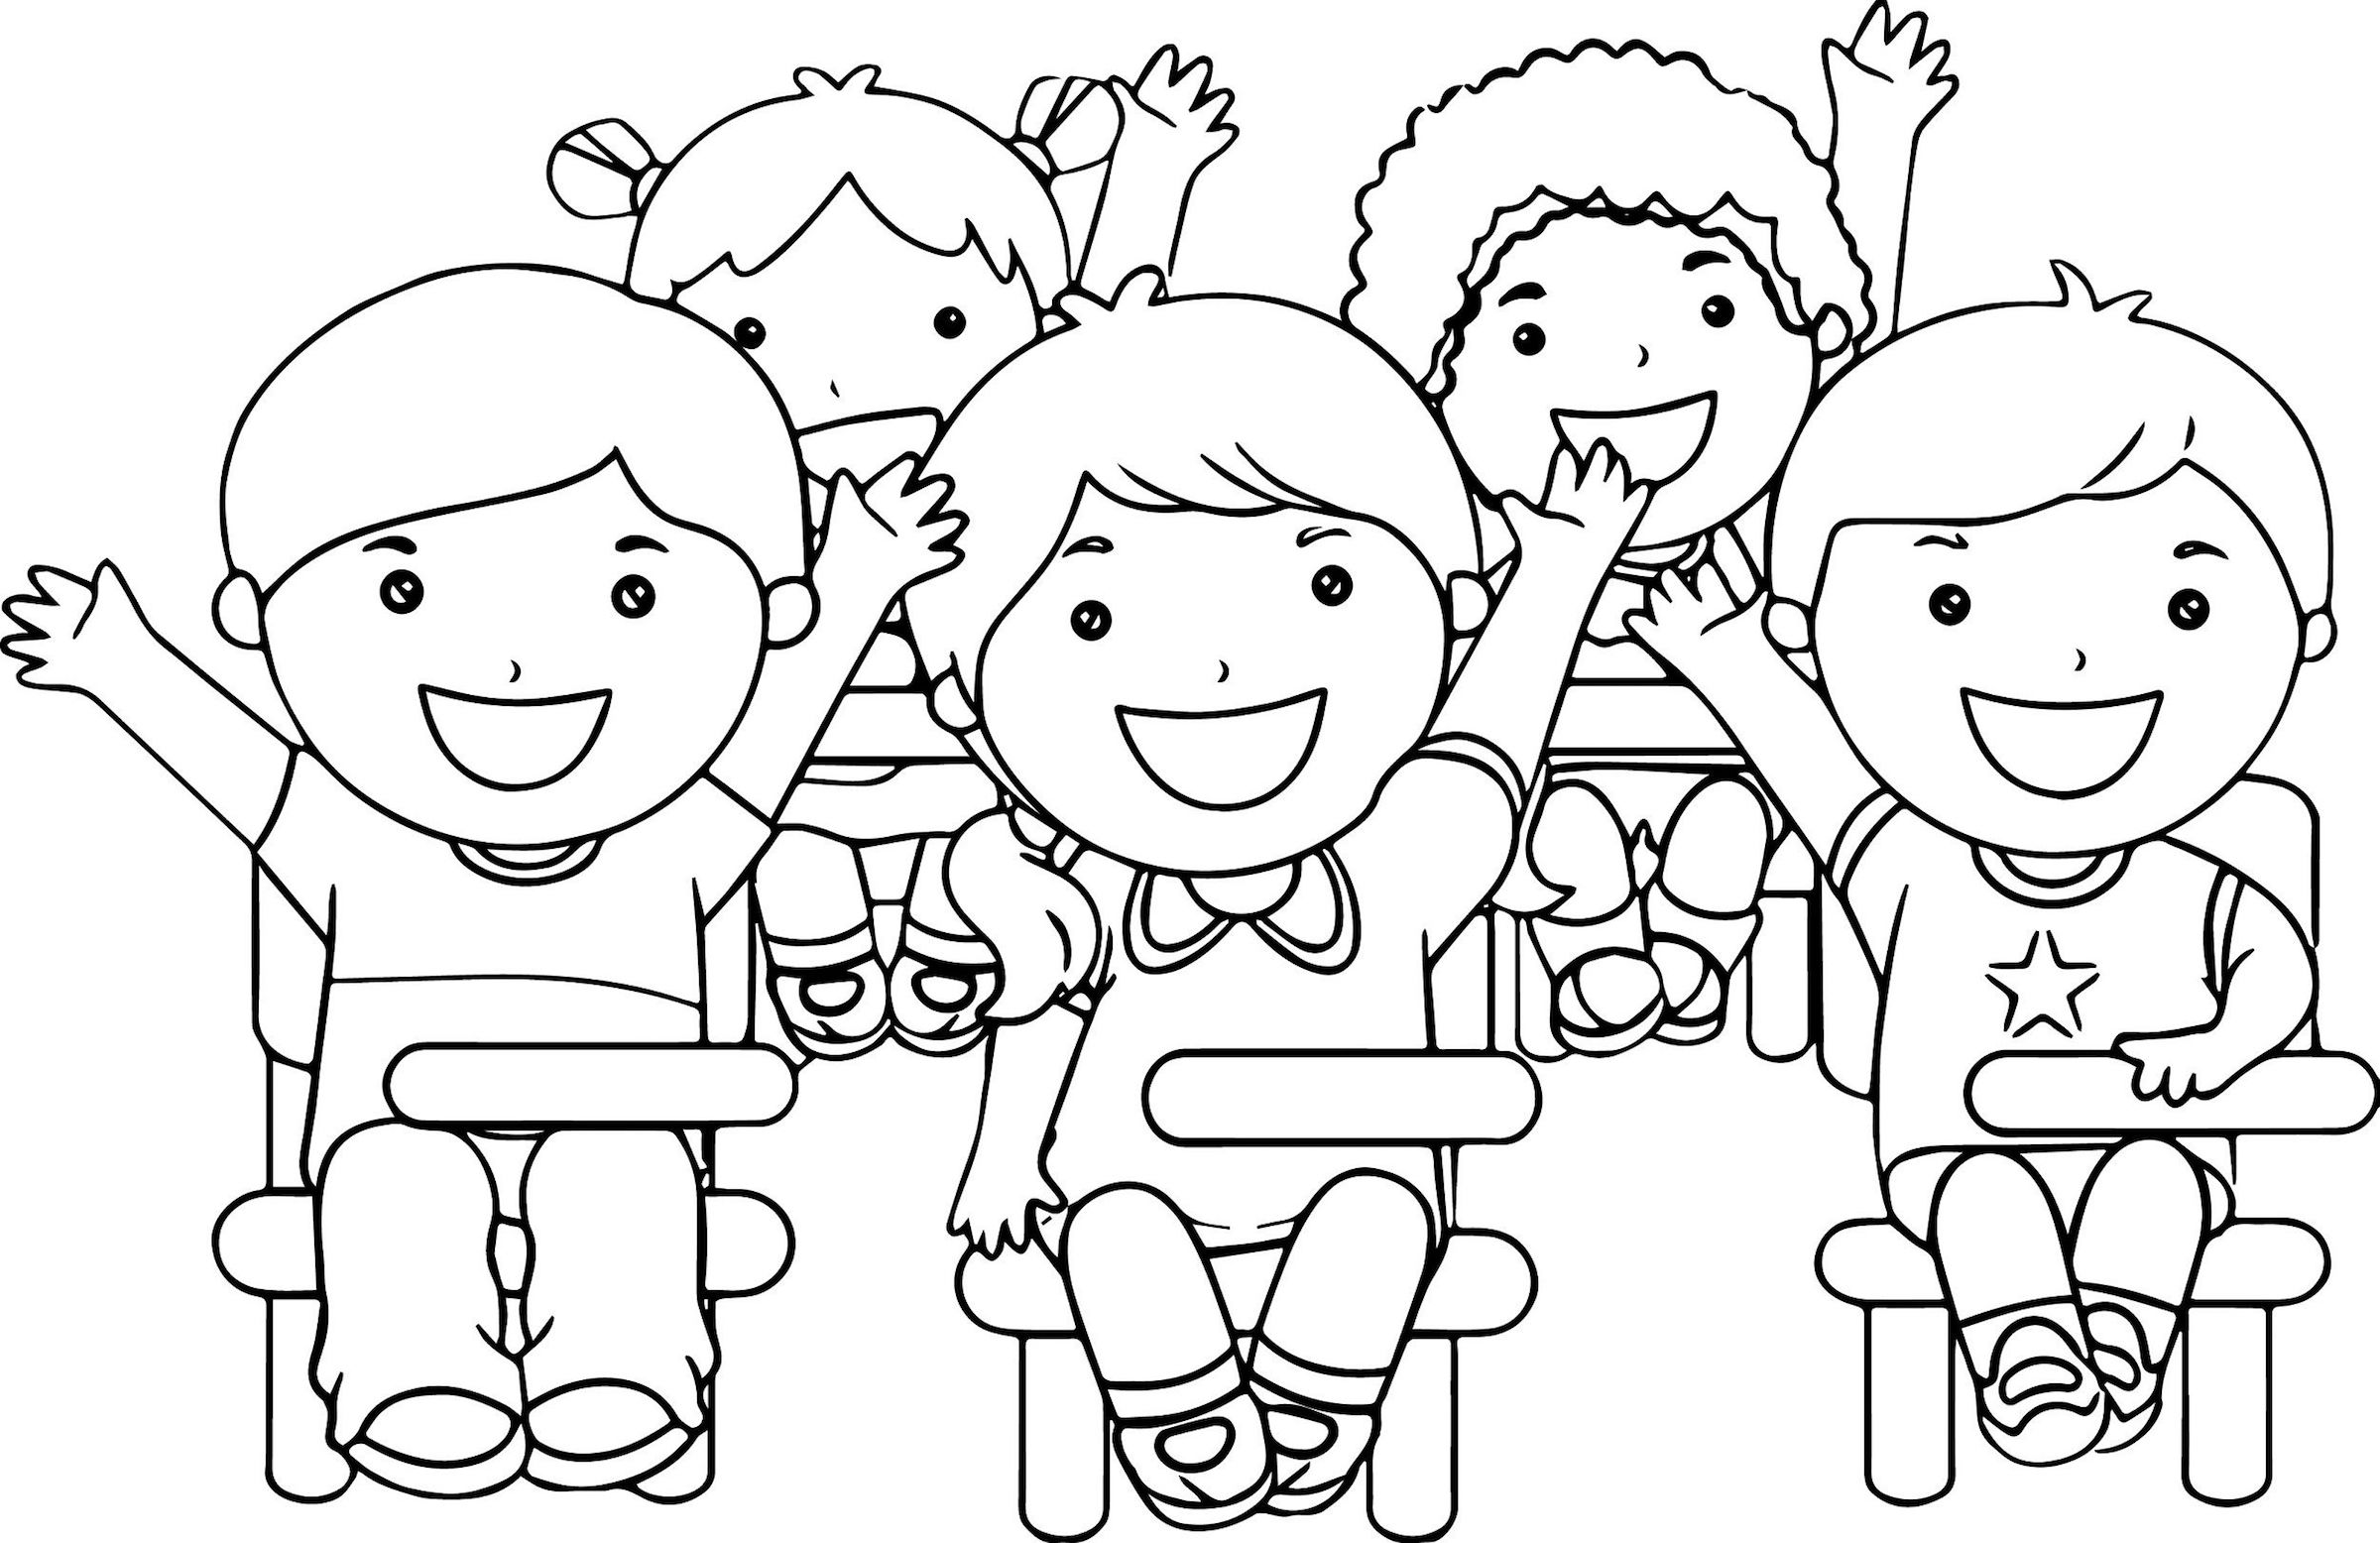 coloring clipart of kids clipart for preschool on clip art graphics and clipartix clipart coloring kids of